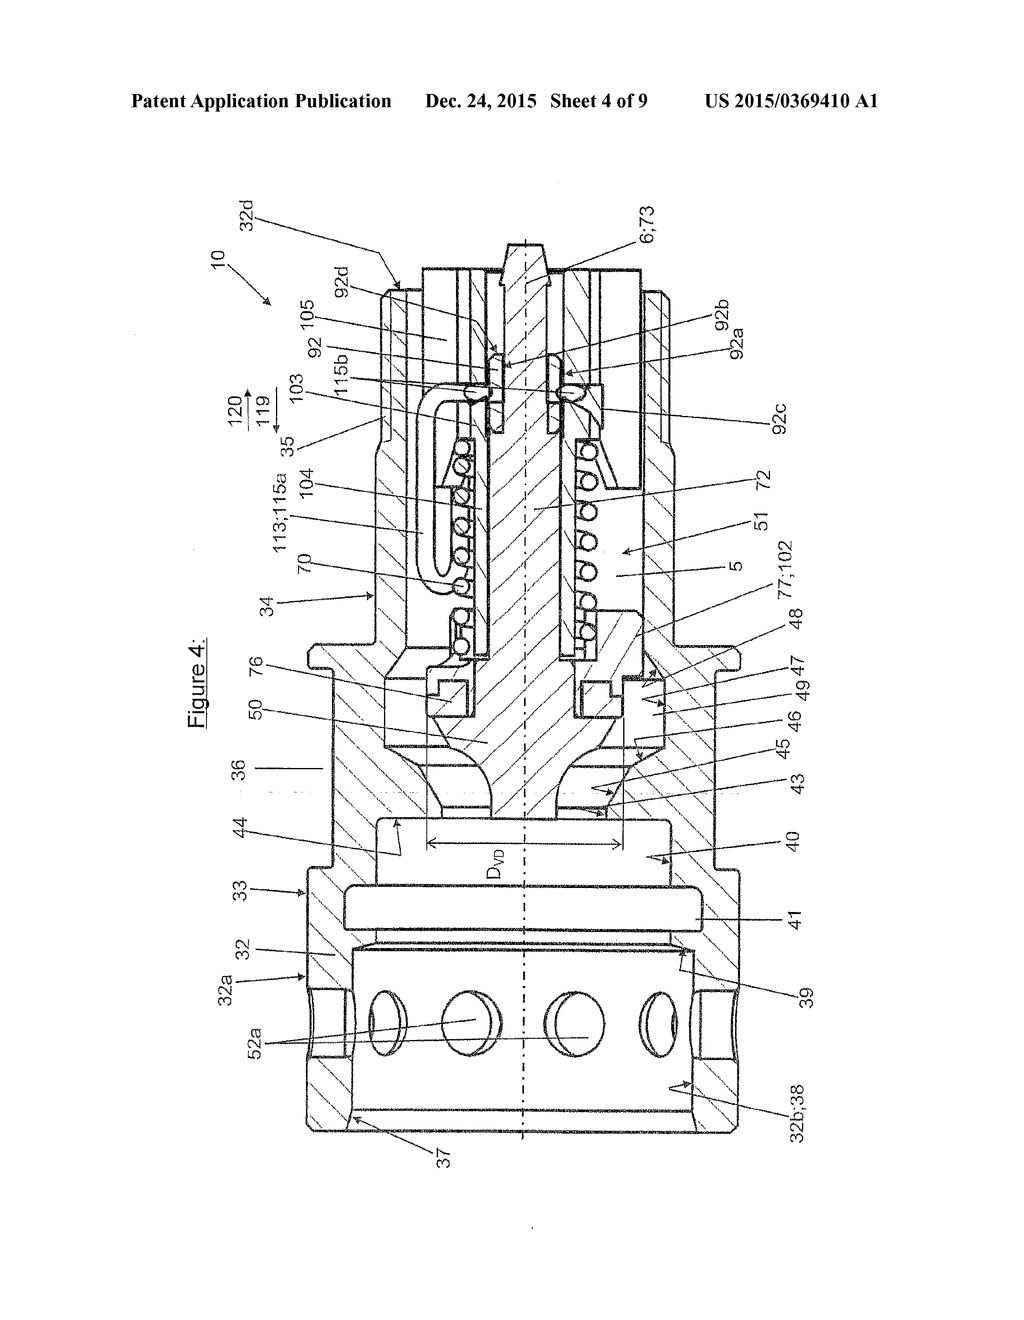 hight resolution of 05 f150 engine diagram wiring librarycoupling part for a quick release coupling for high pressure hydraulic